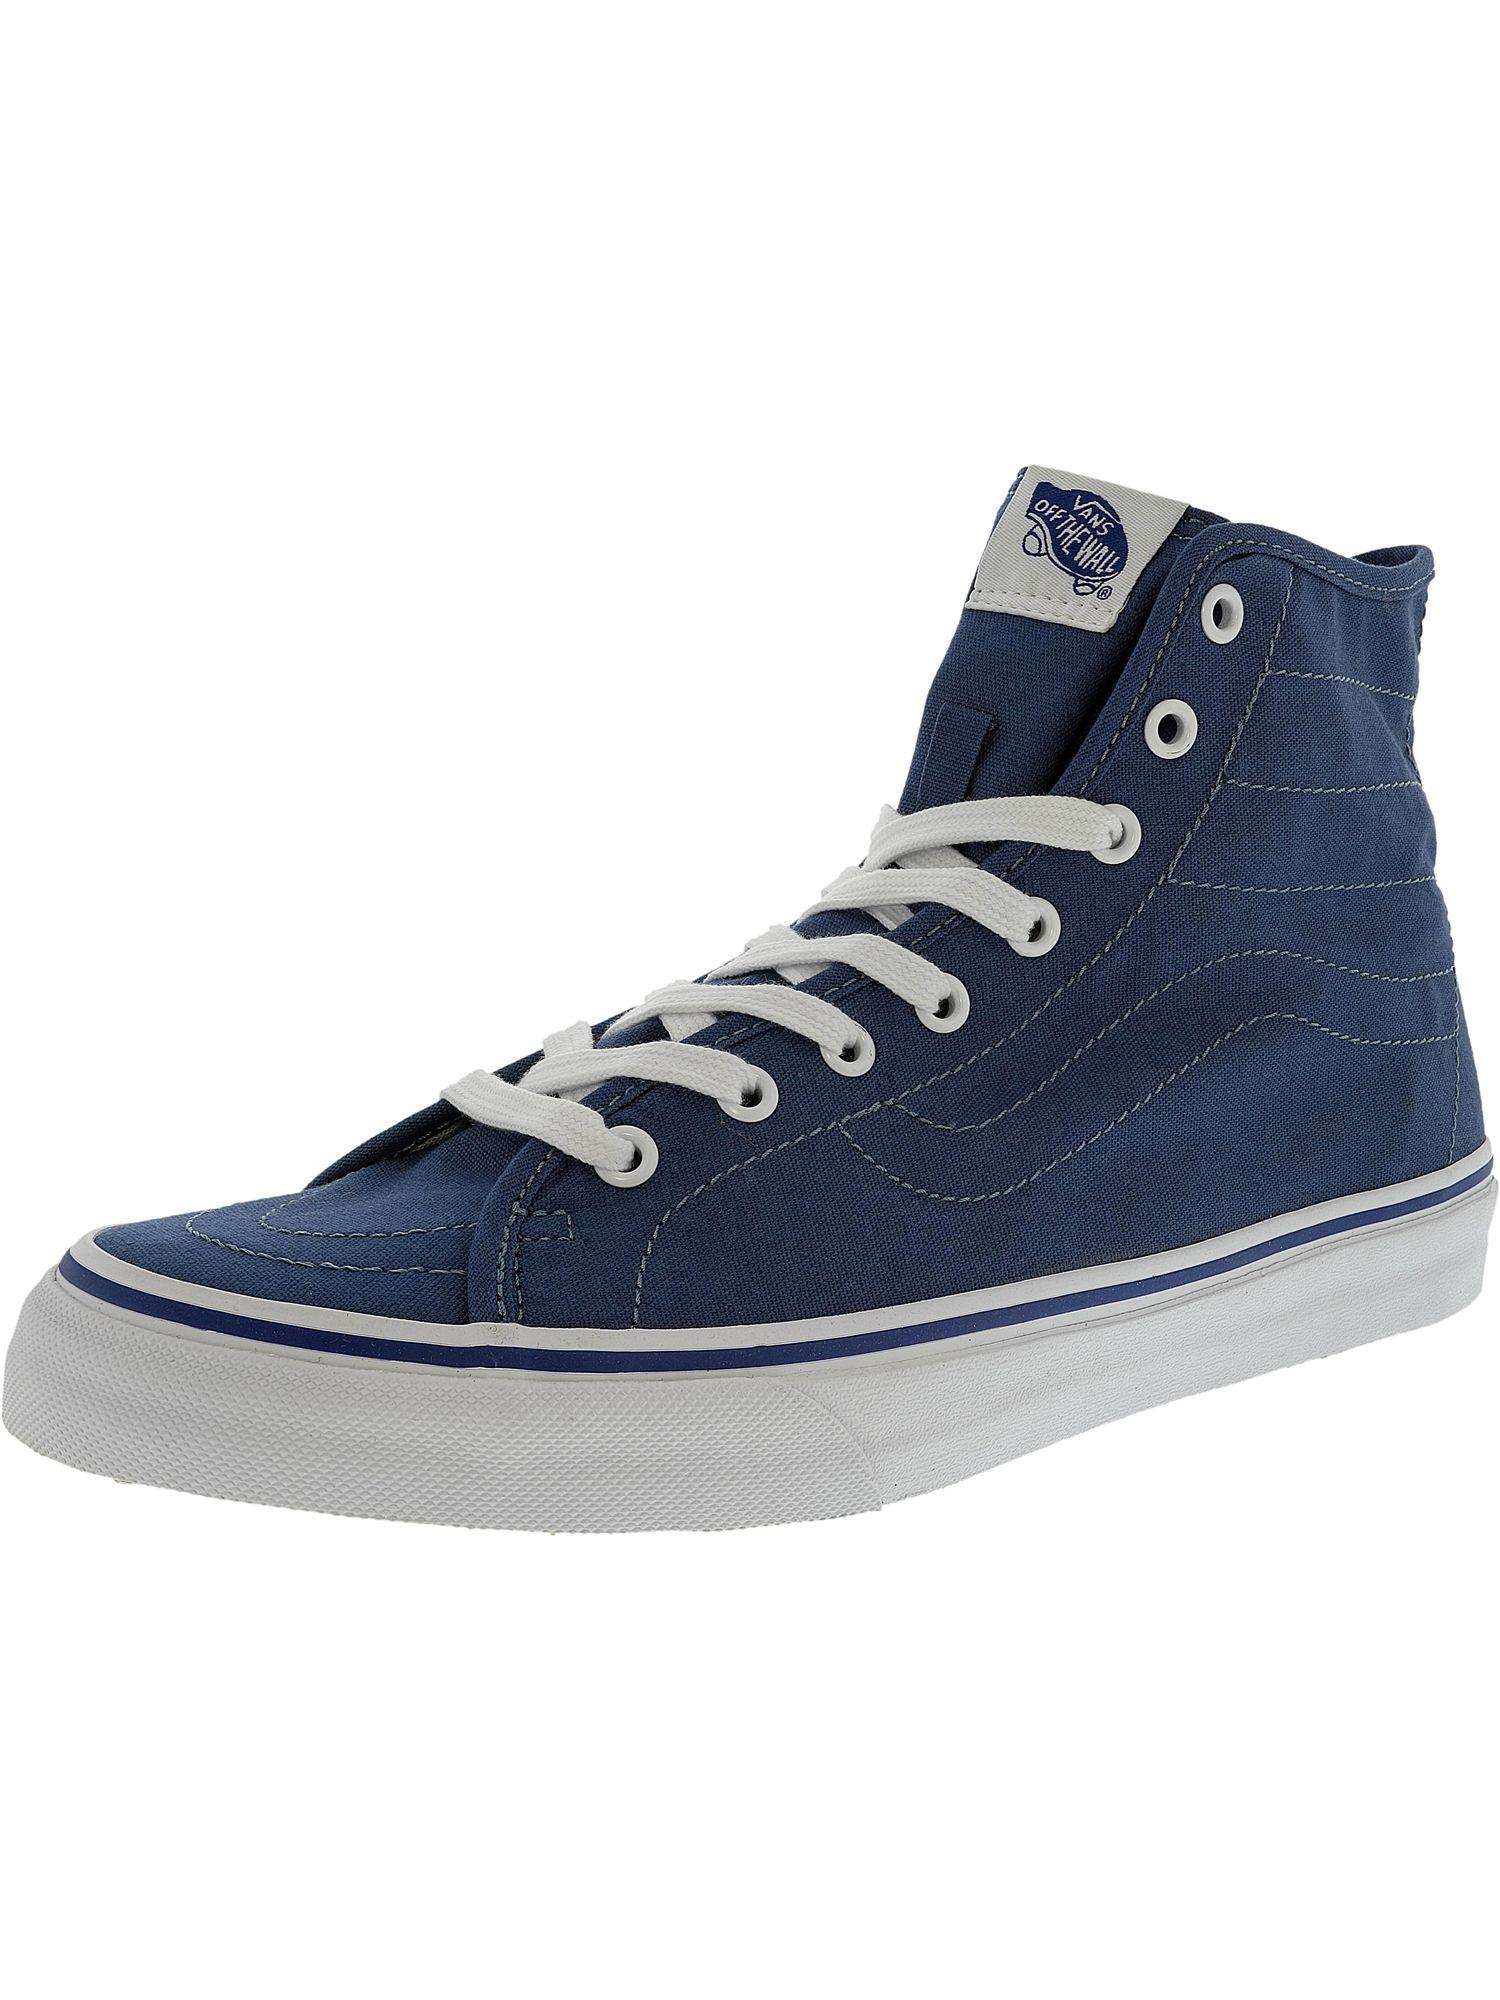 abb407a812c995 Lyst - Vans Sk8-hi Decon Canvas Ankle-high Fashion Sneaker in Blue